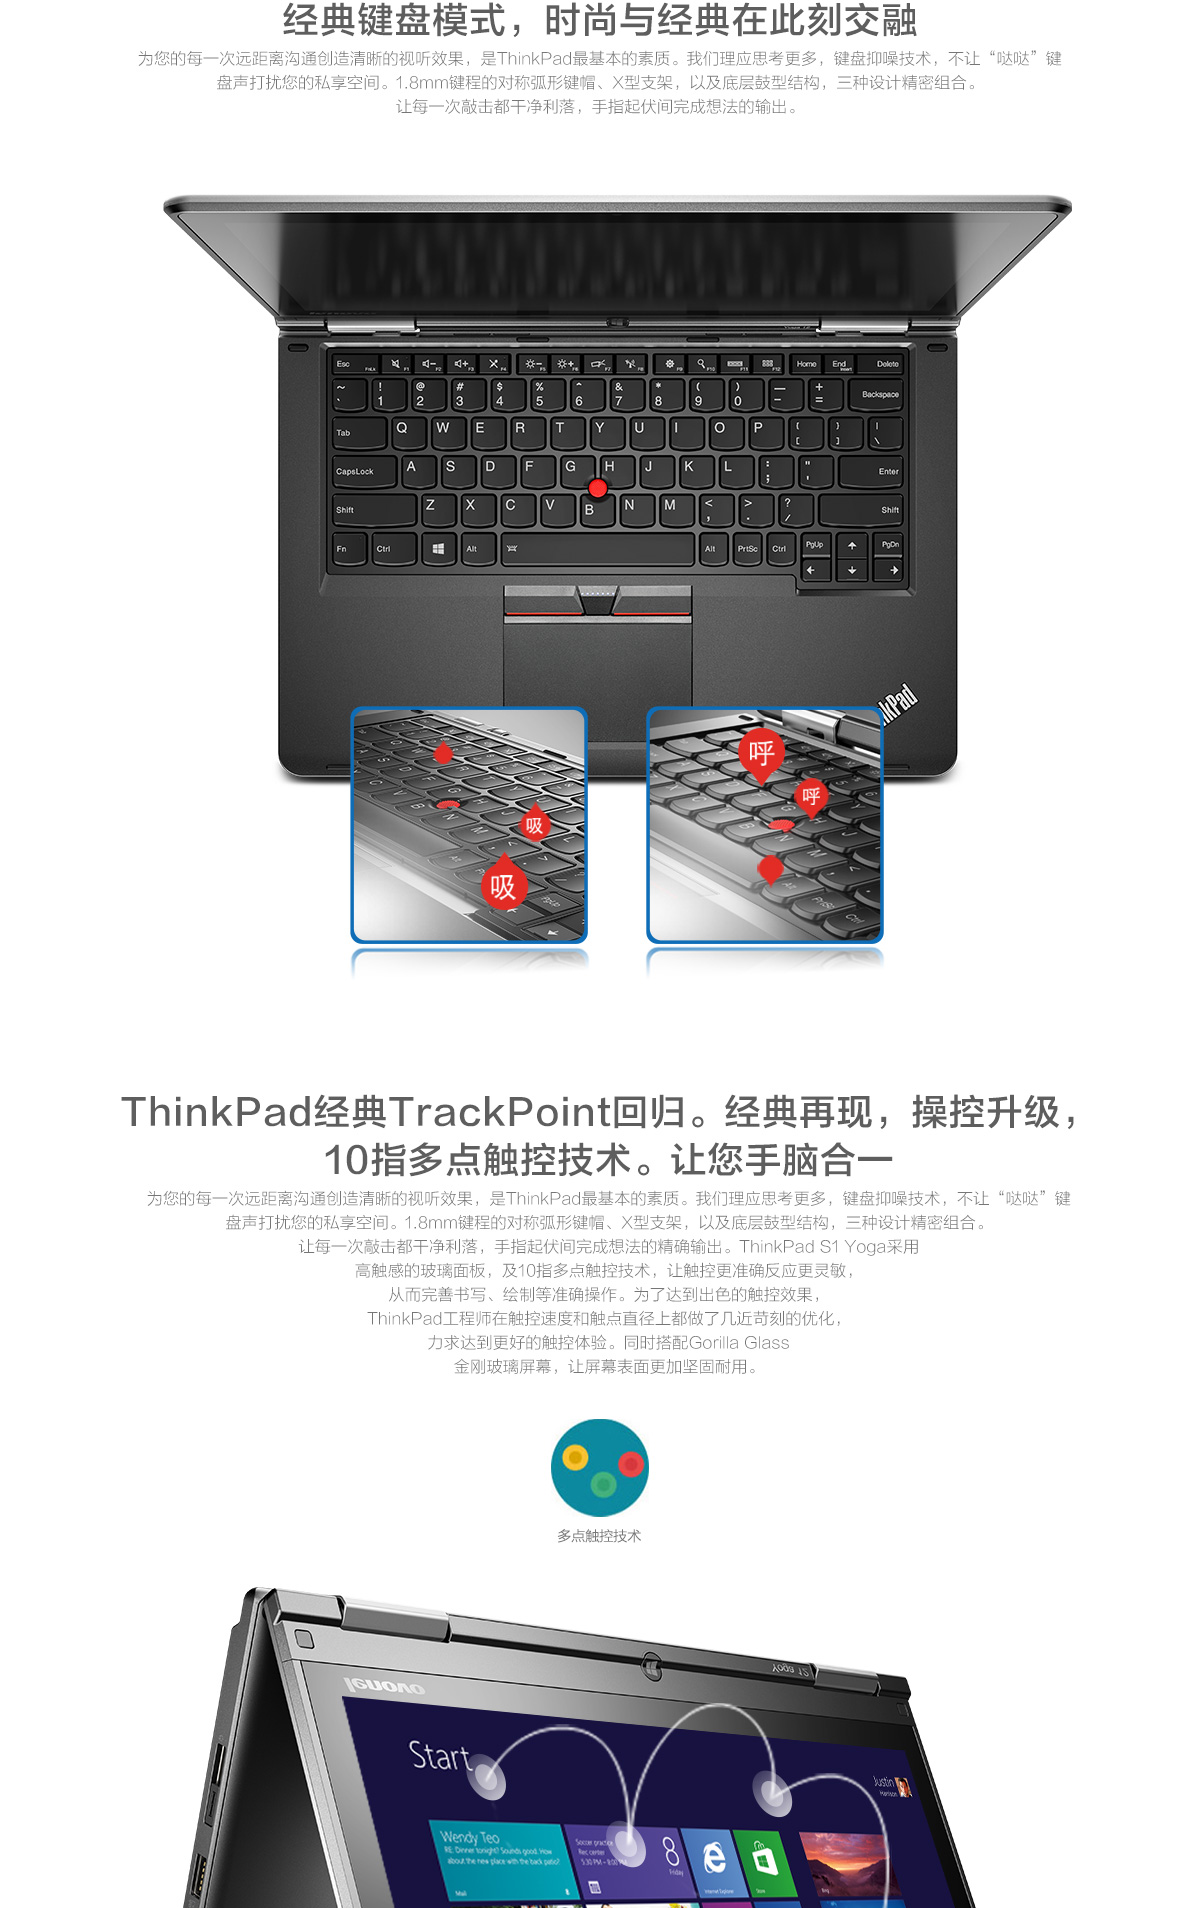 ThinkpadS1 Yoga 2015(PC)9